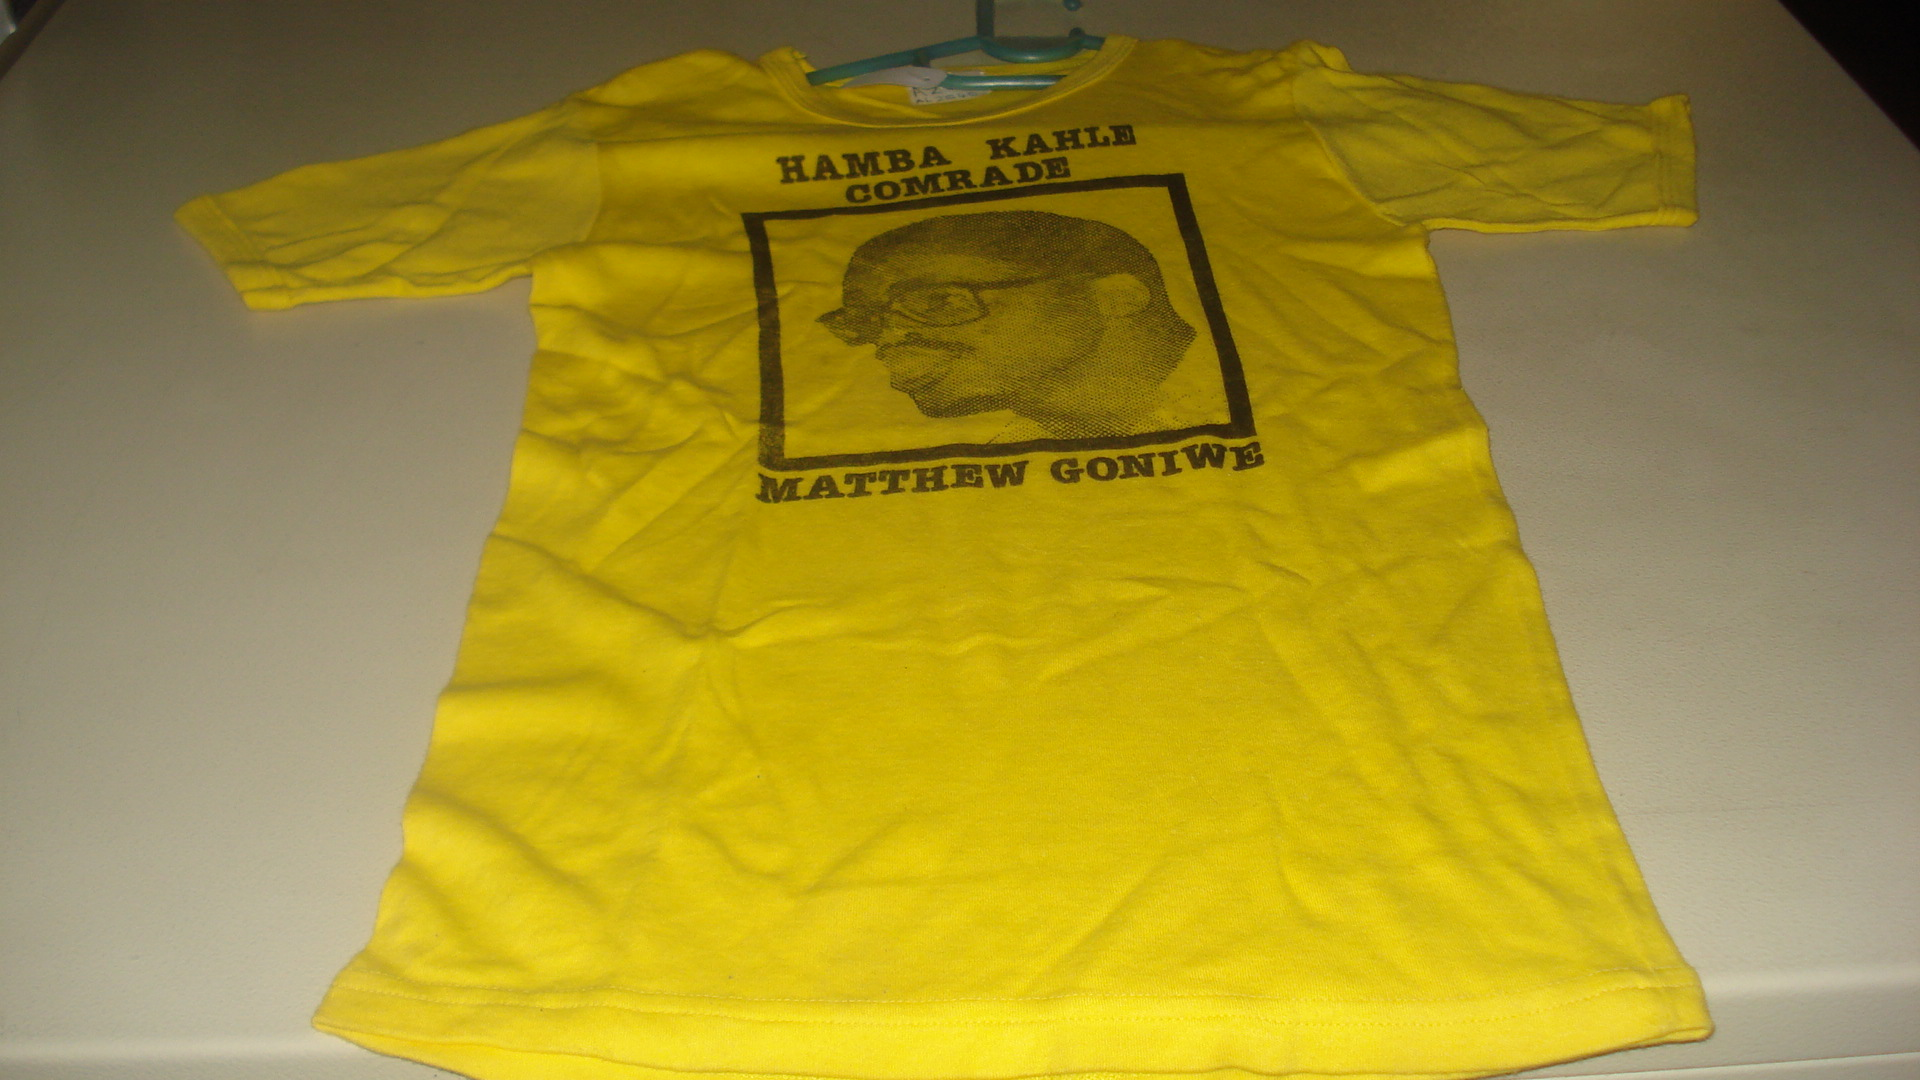 Hamba Kahle Comrade: Matthew Goniwe, T-shirt, SAHA Ephemera Collection, AL2540_A286